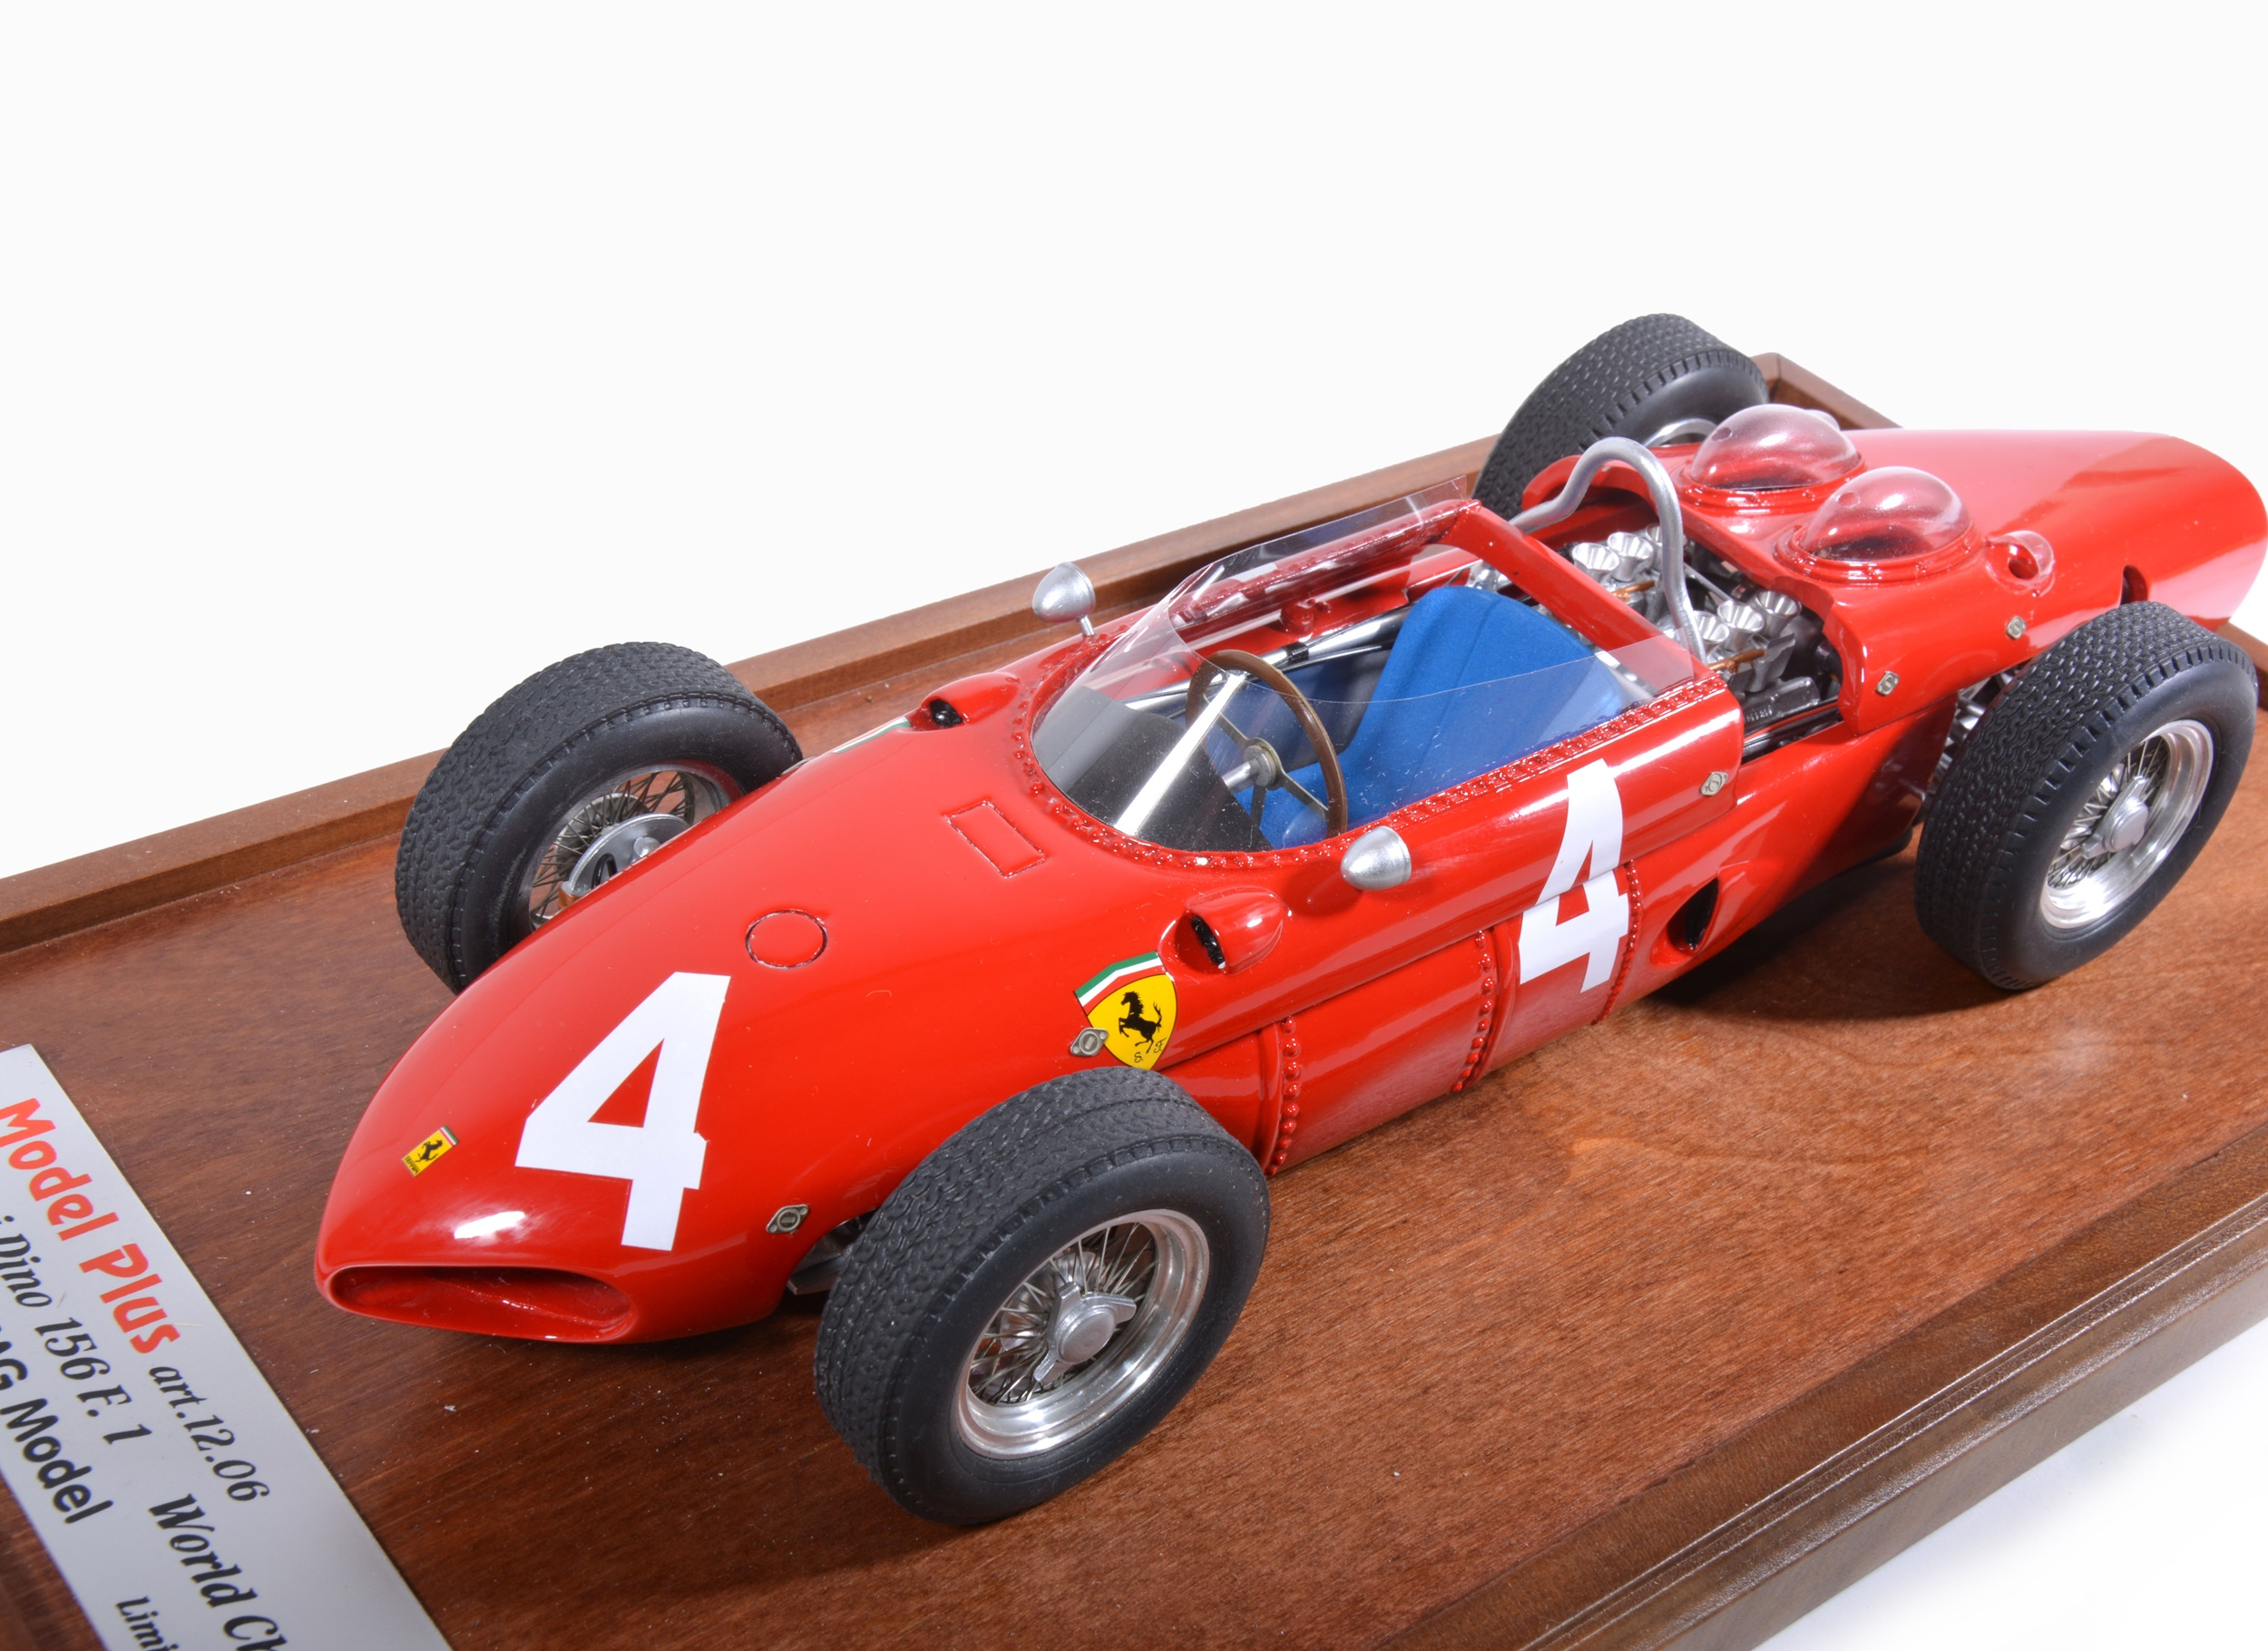 A Gentleman's Collection of Scale Model Racing Cars and Motorbikes